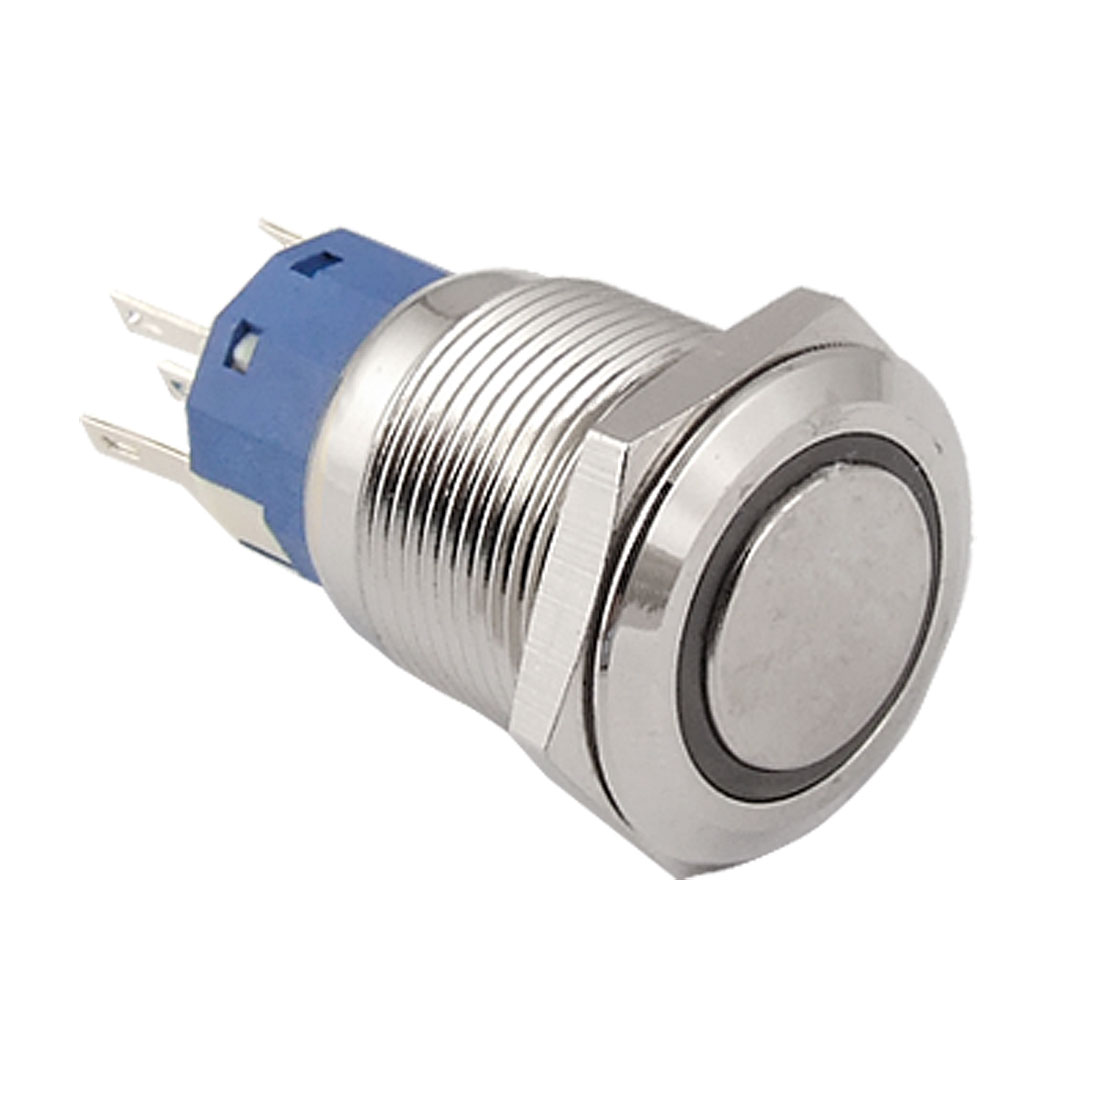 12V Blue Ring Light Lamp Self Locking 19mm Stainless Steel Push Button Switch